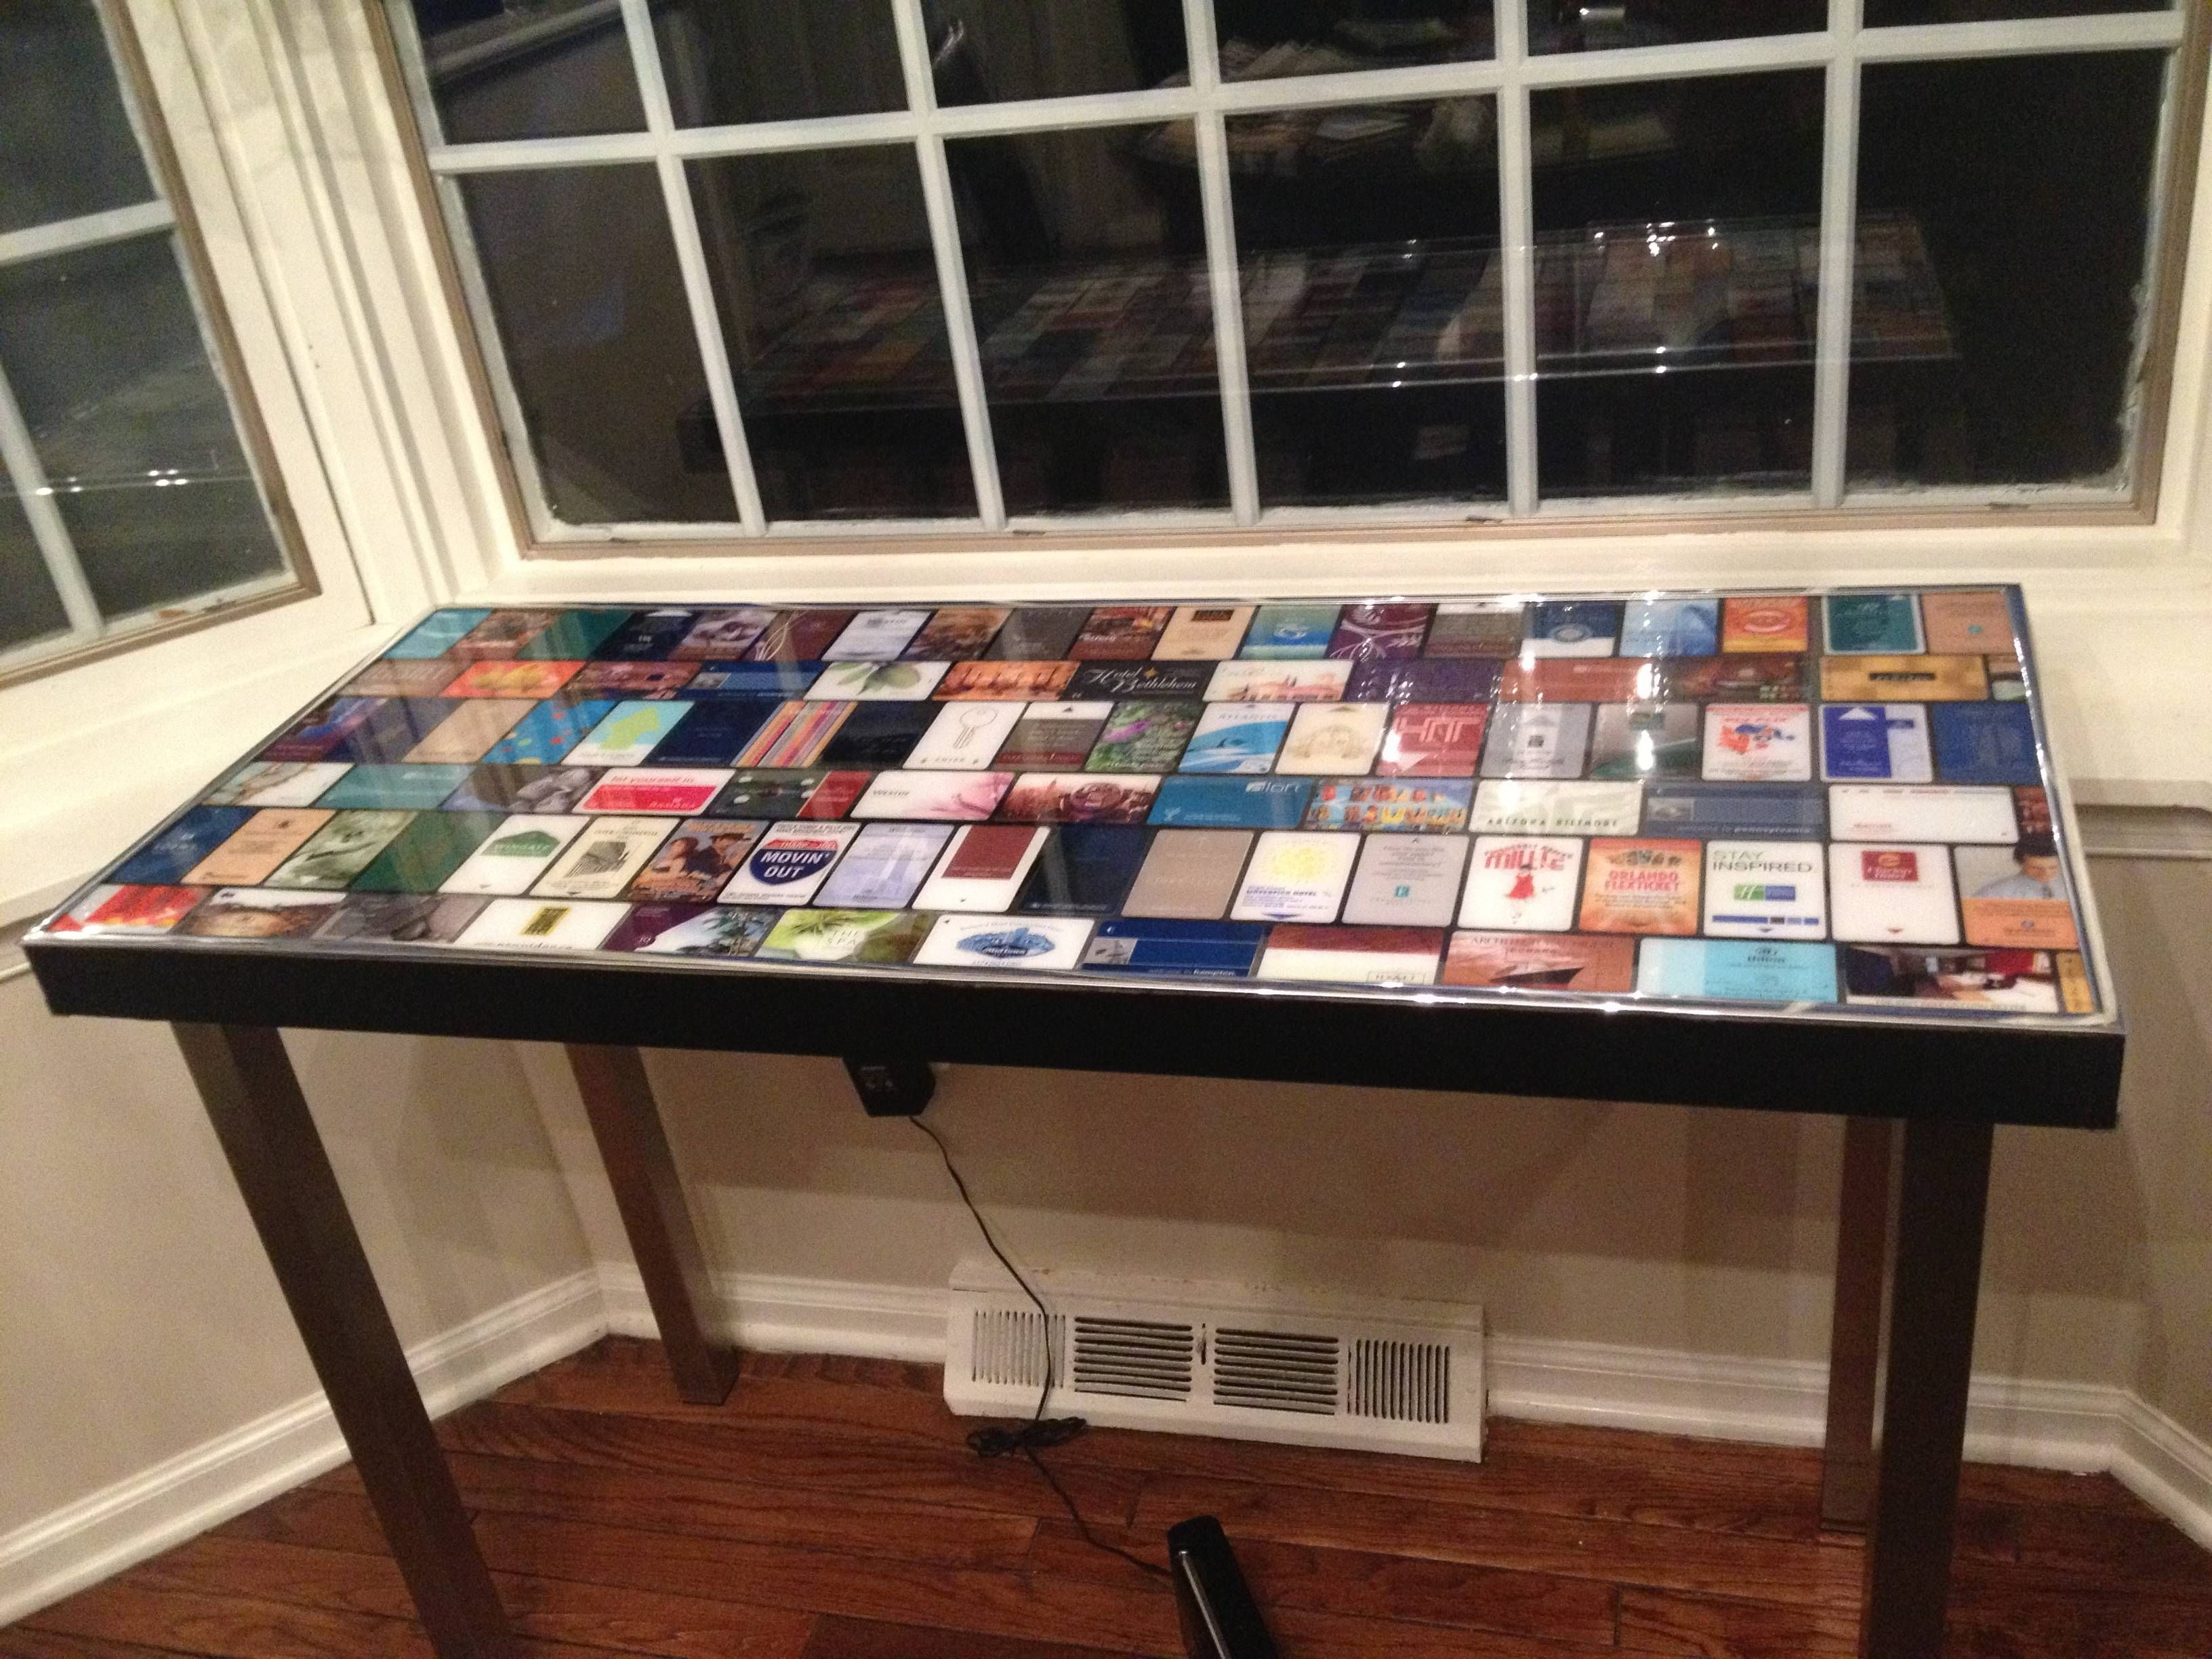 Ikea Table With Hotel Key Cards Hotel Card Hotel Key Cards Game Room Basement